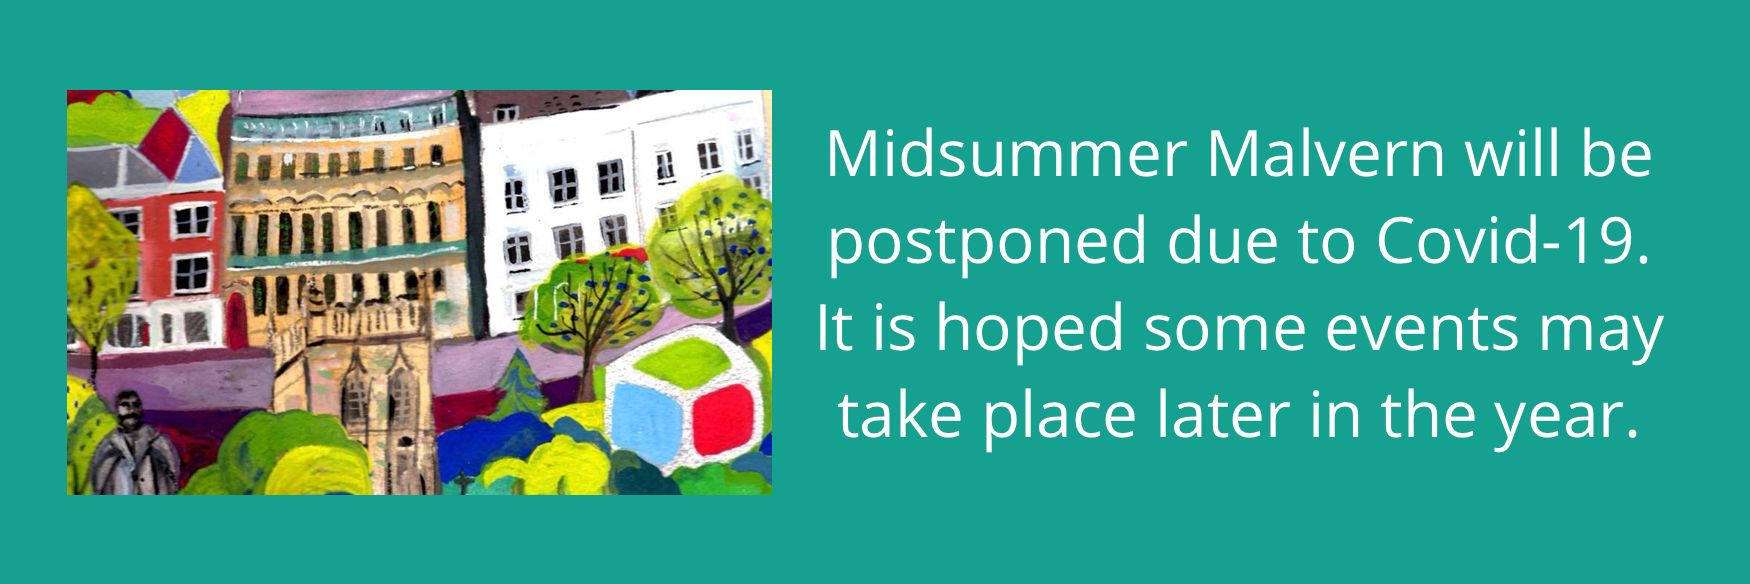 Midsummer Malvern 2020 postponed to later in the year